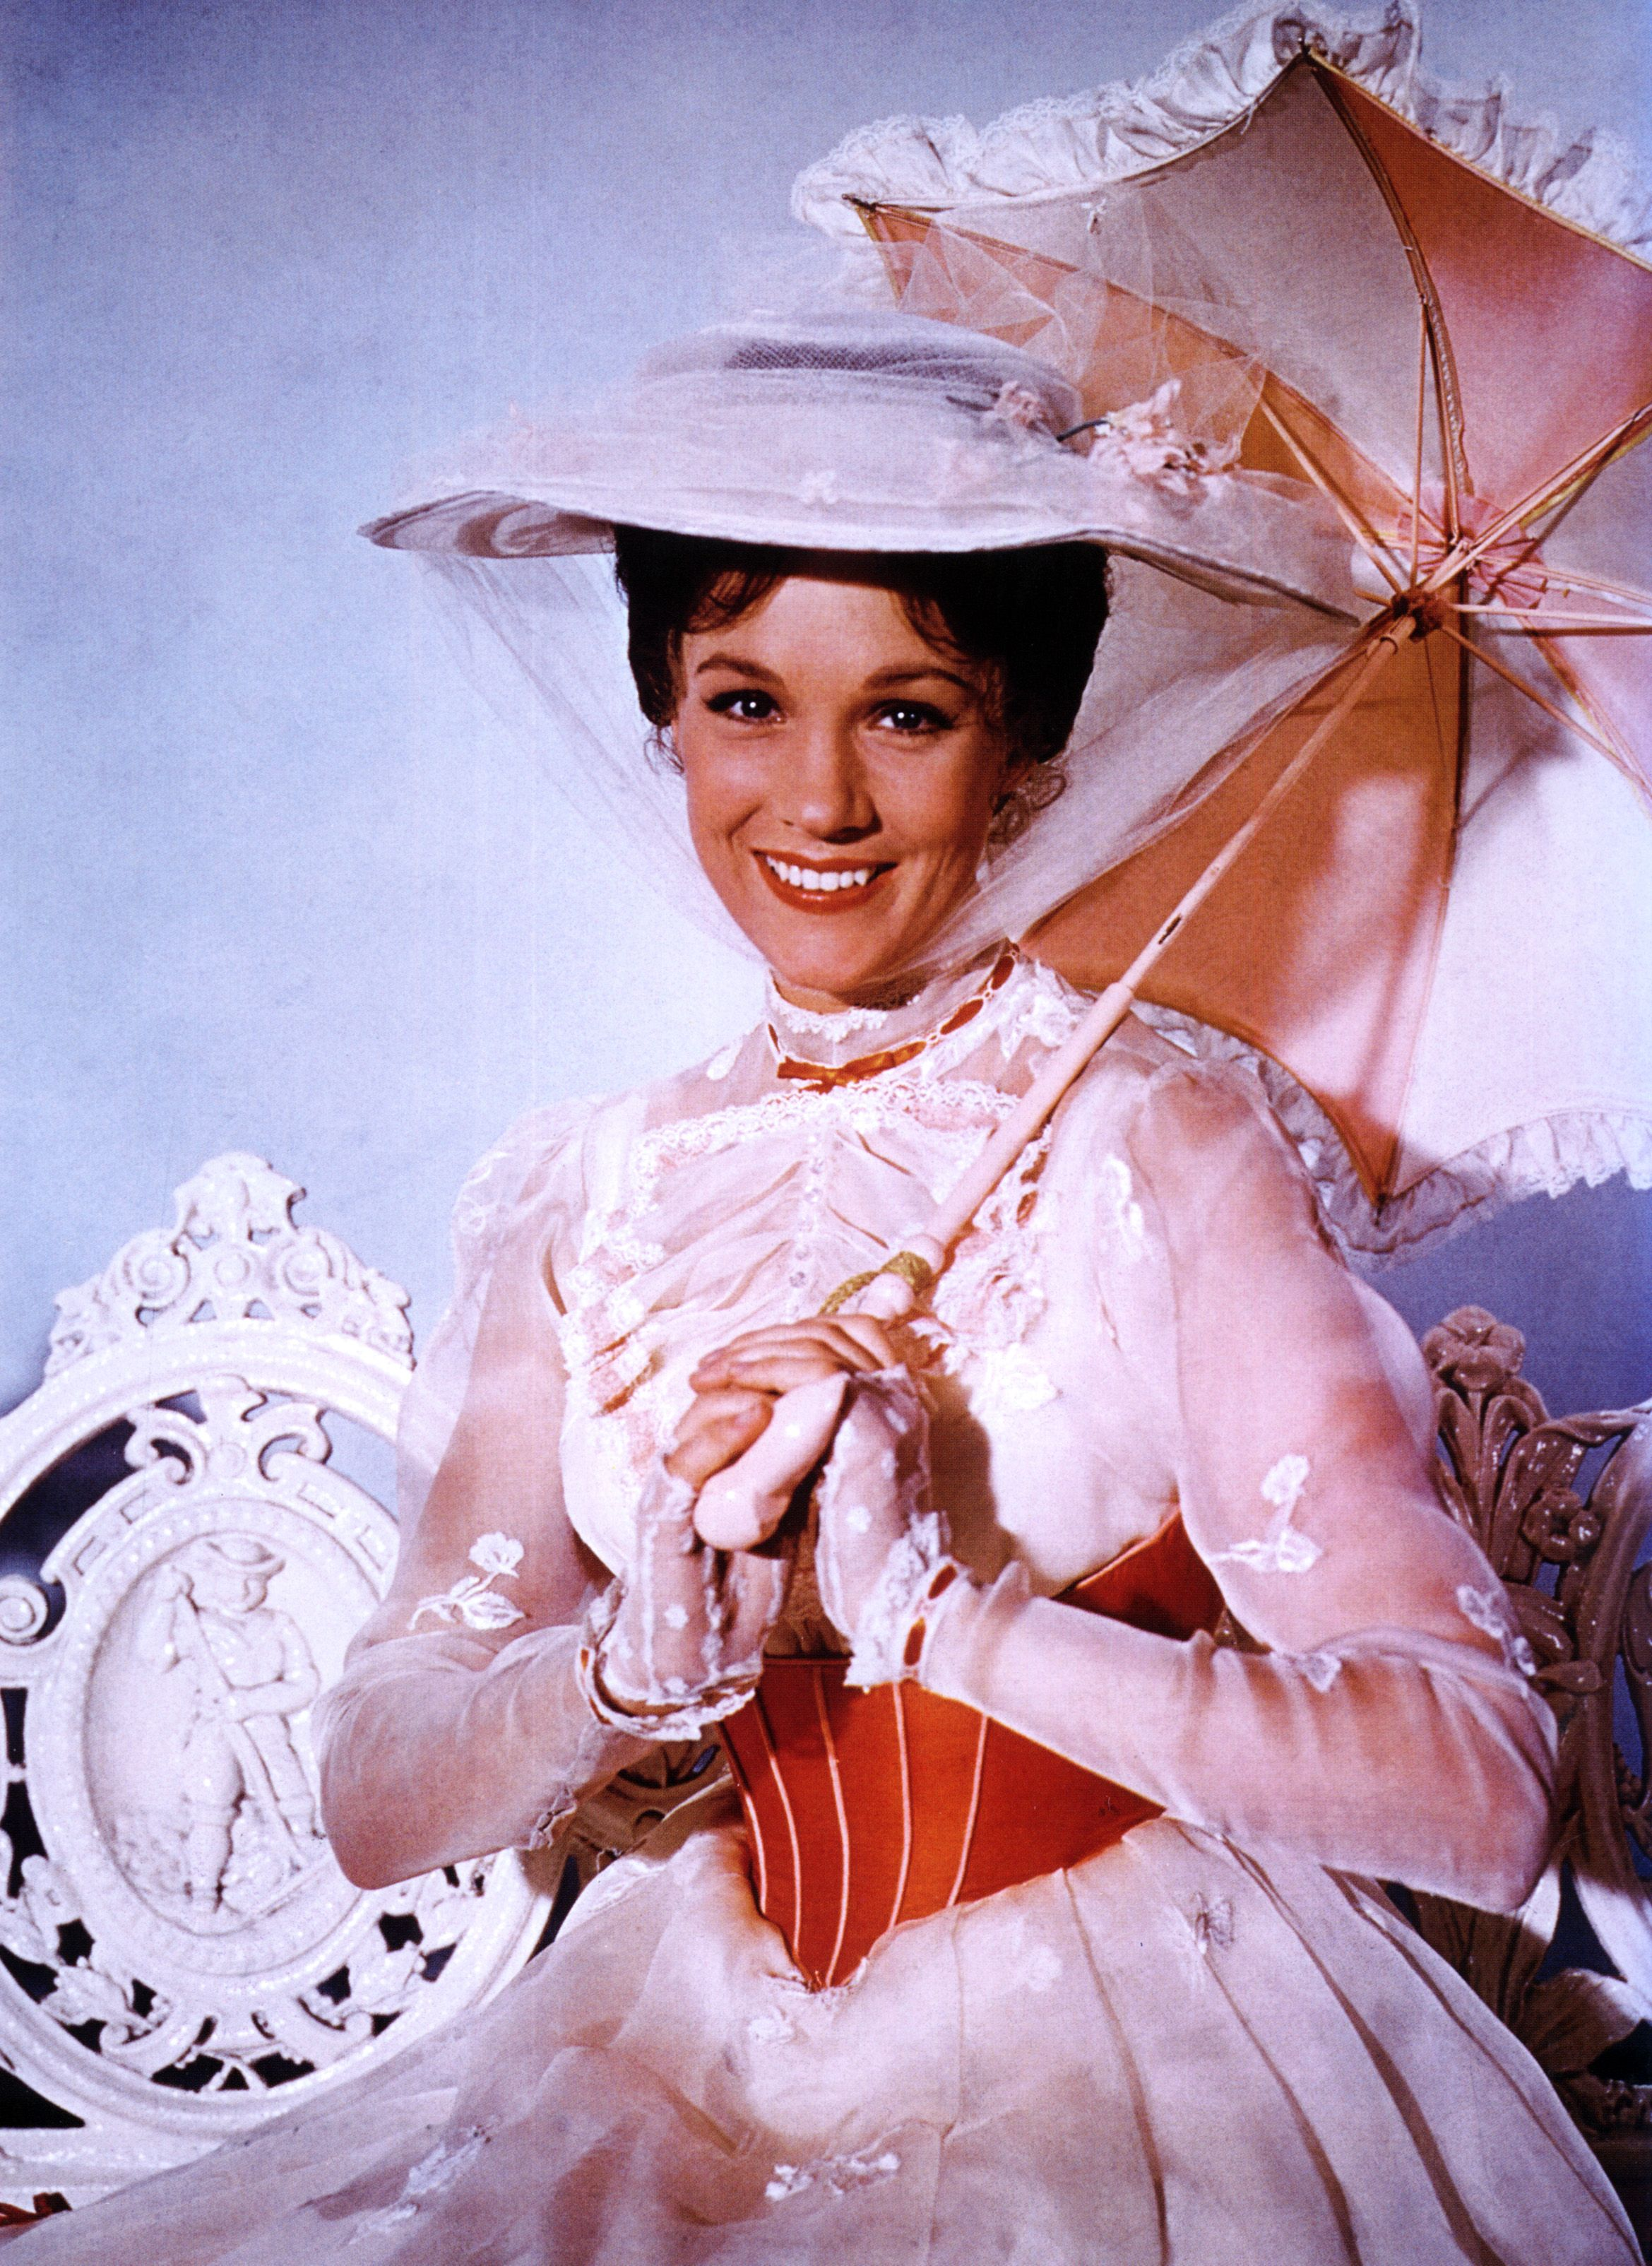 Julie Andrews Had a Close Call While Filming Mary Poppins's Flying Scenes